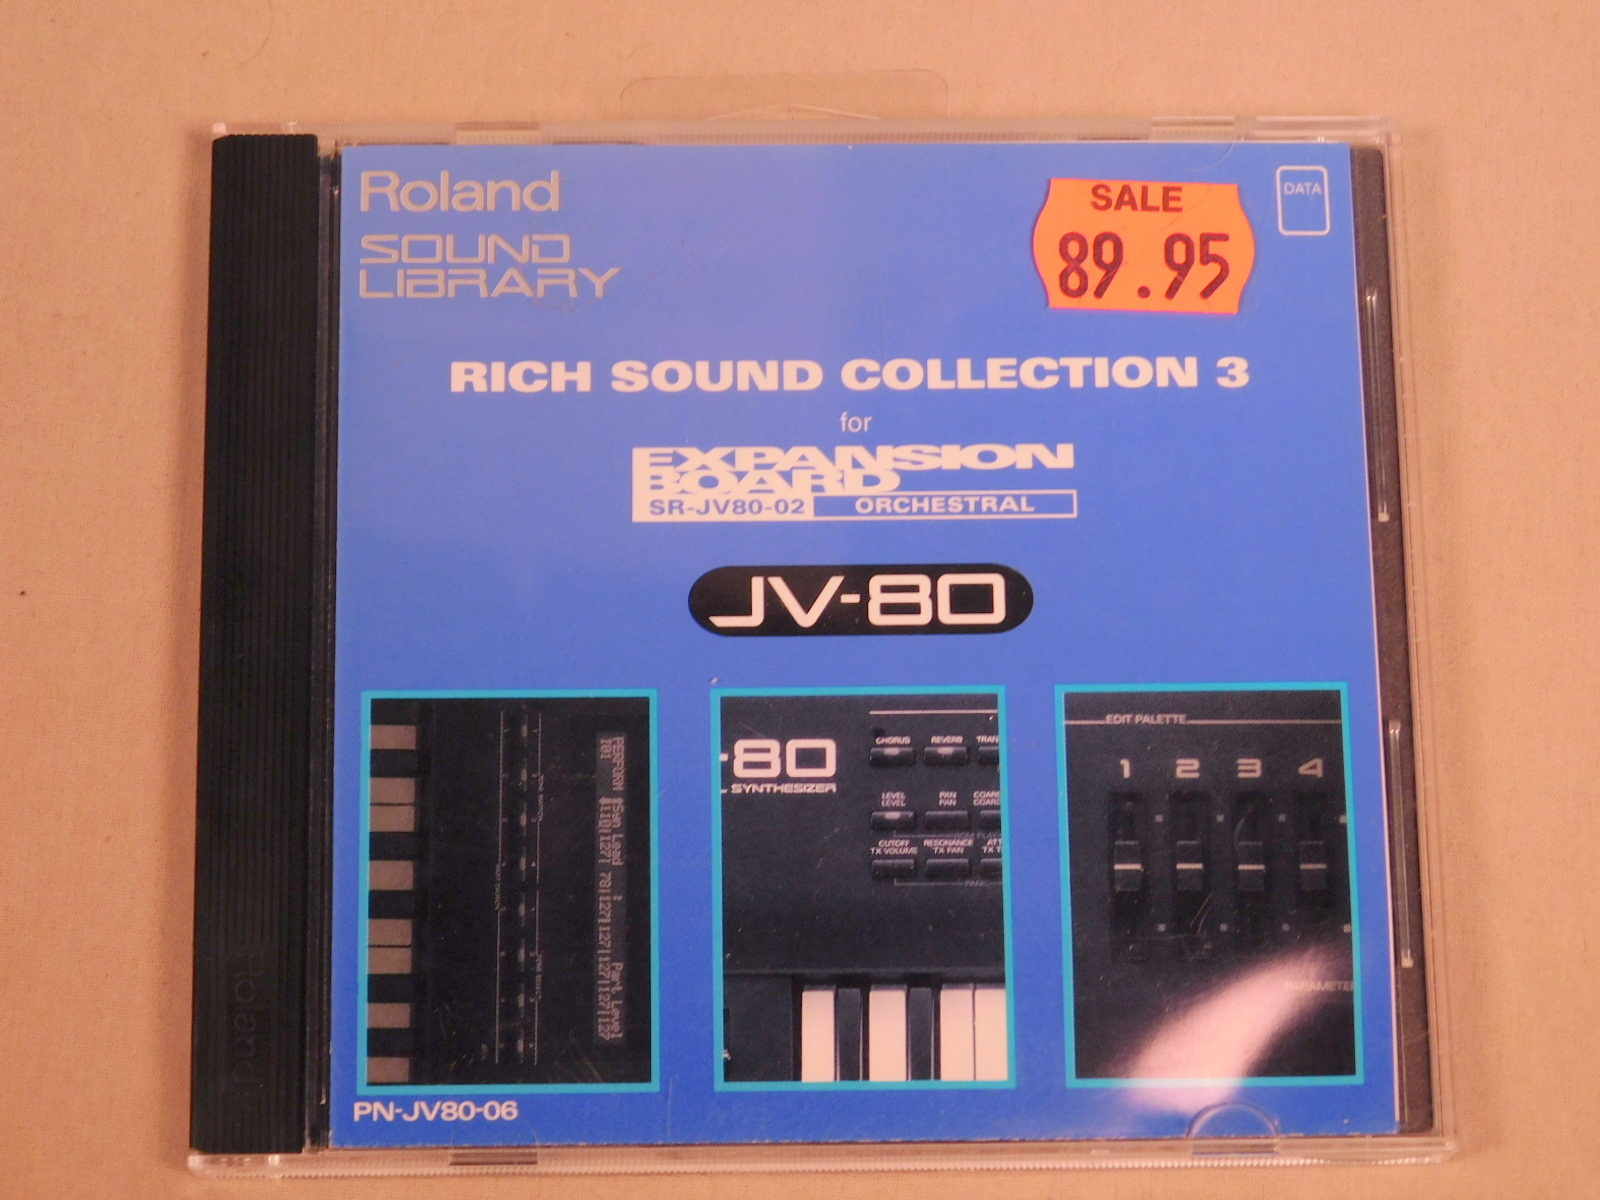 ROLAND PN-JV80-06 RICH SOUND COLLECTION 3 III EXPANSION BOARD FOR JV-80